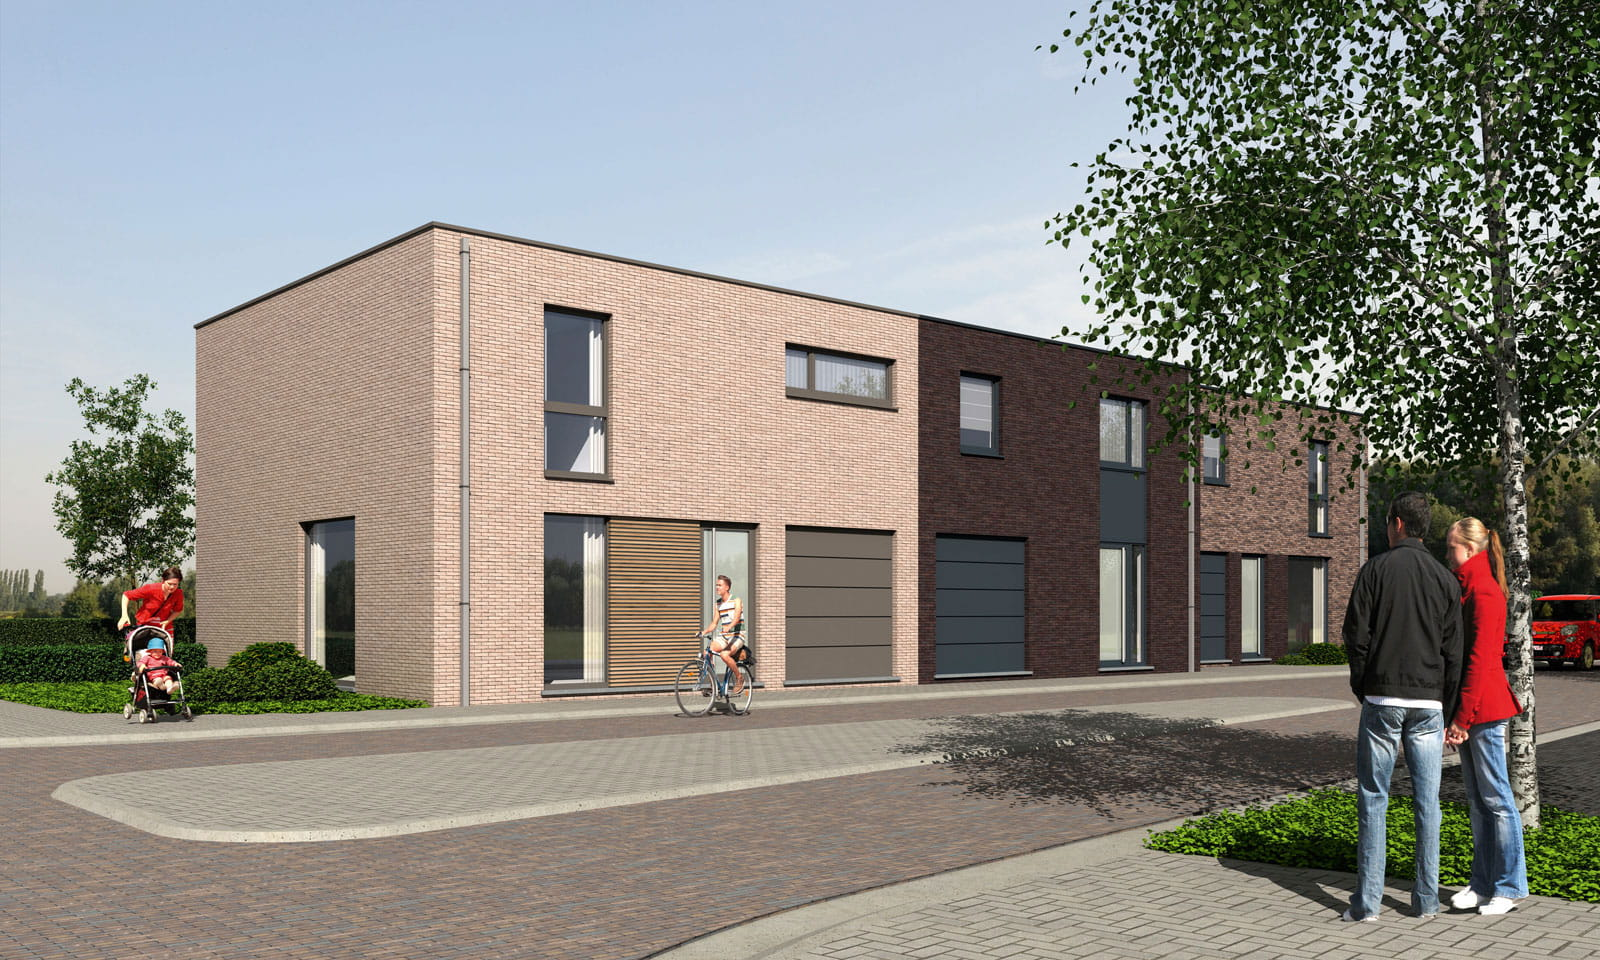 https://www.matexi.be/-/media/projects/antw/p0056/project_detail_images/oudturnhouthueve-akkersmatexi6.jpg